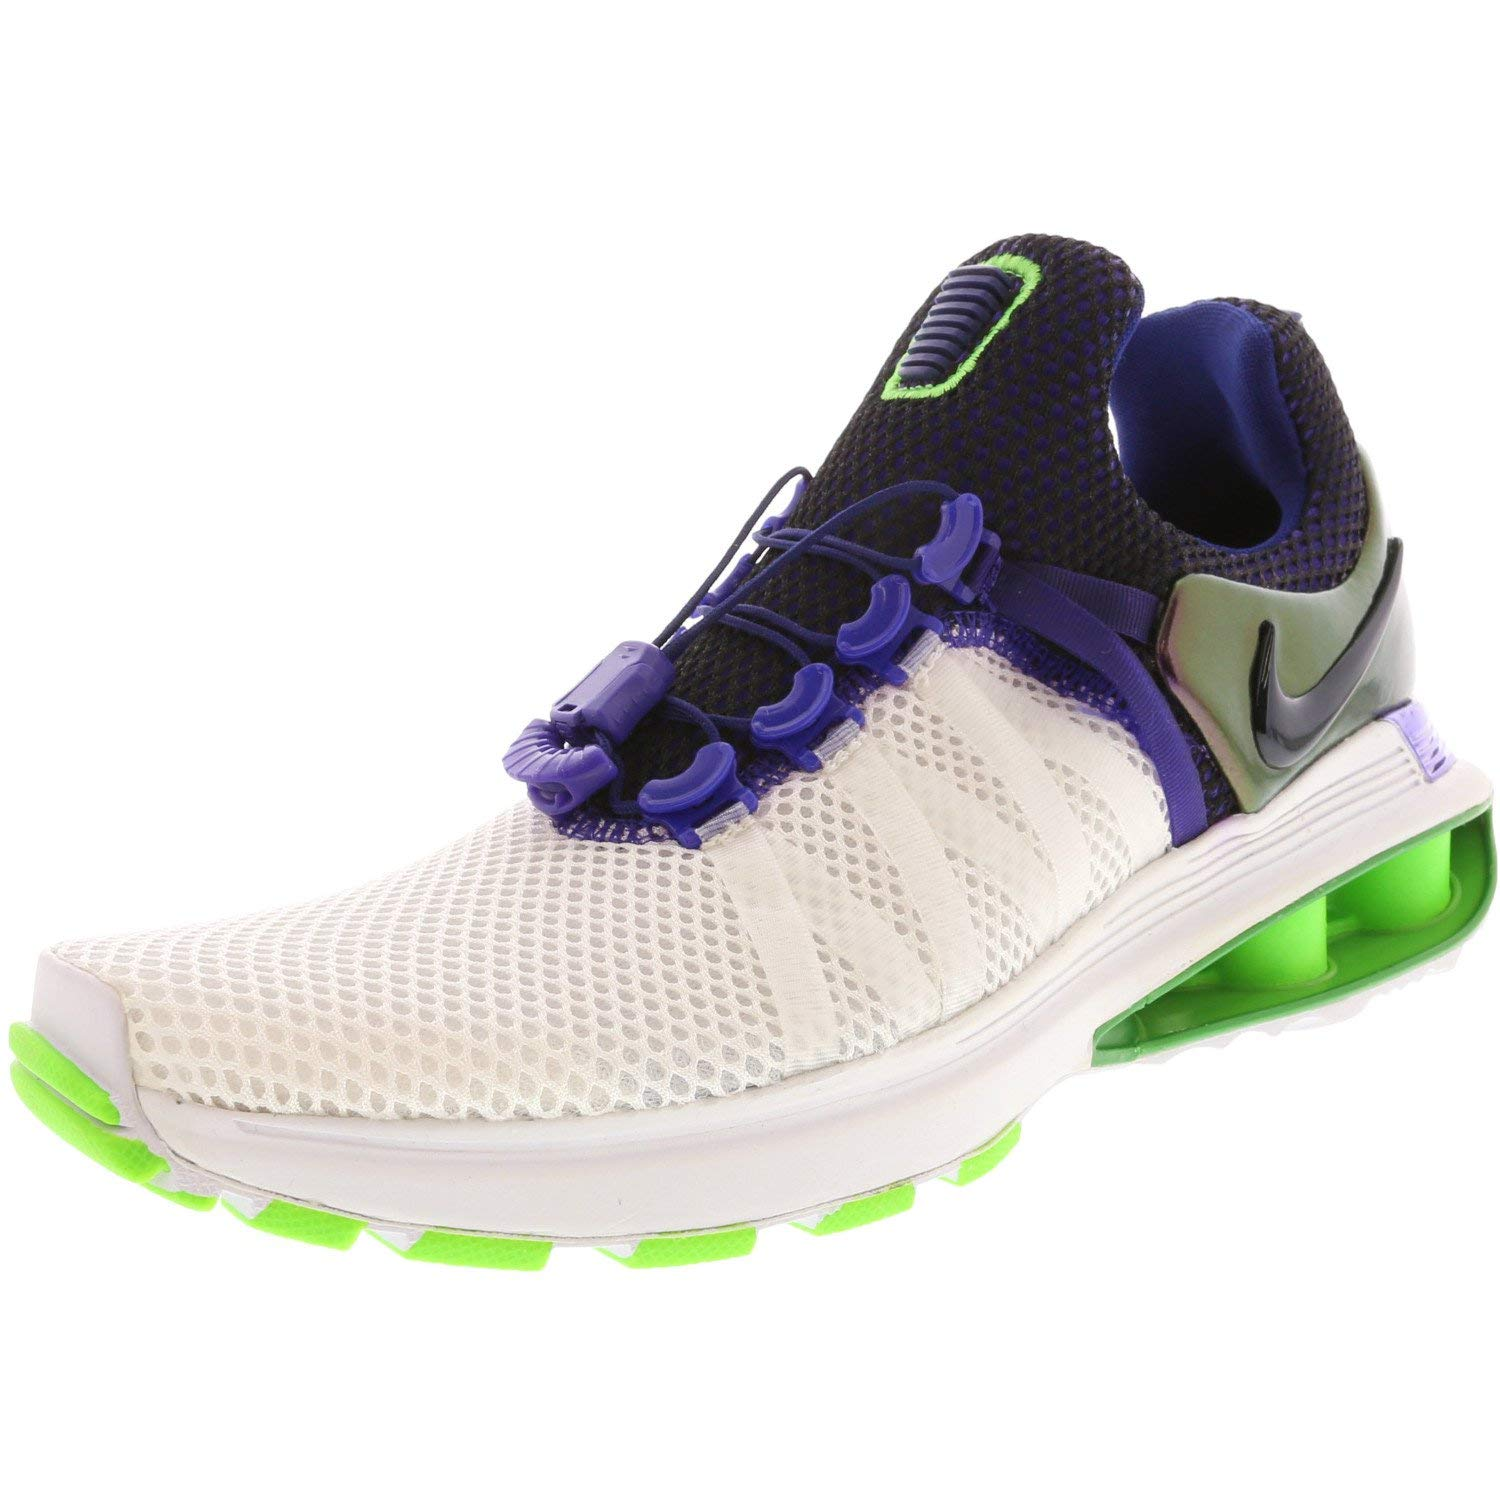 NIKE Women s Shox Gravity Running Shoes-White Fusion Violet-9.5